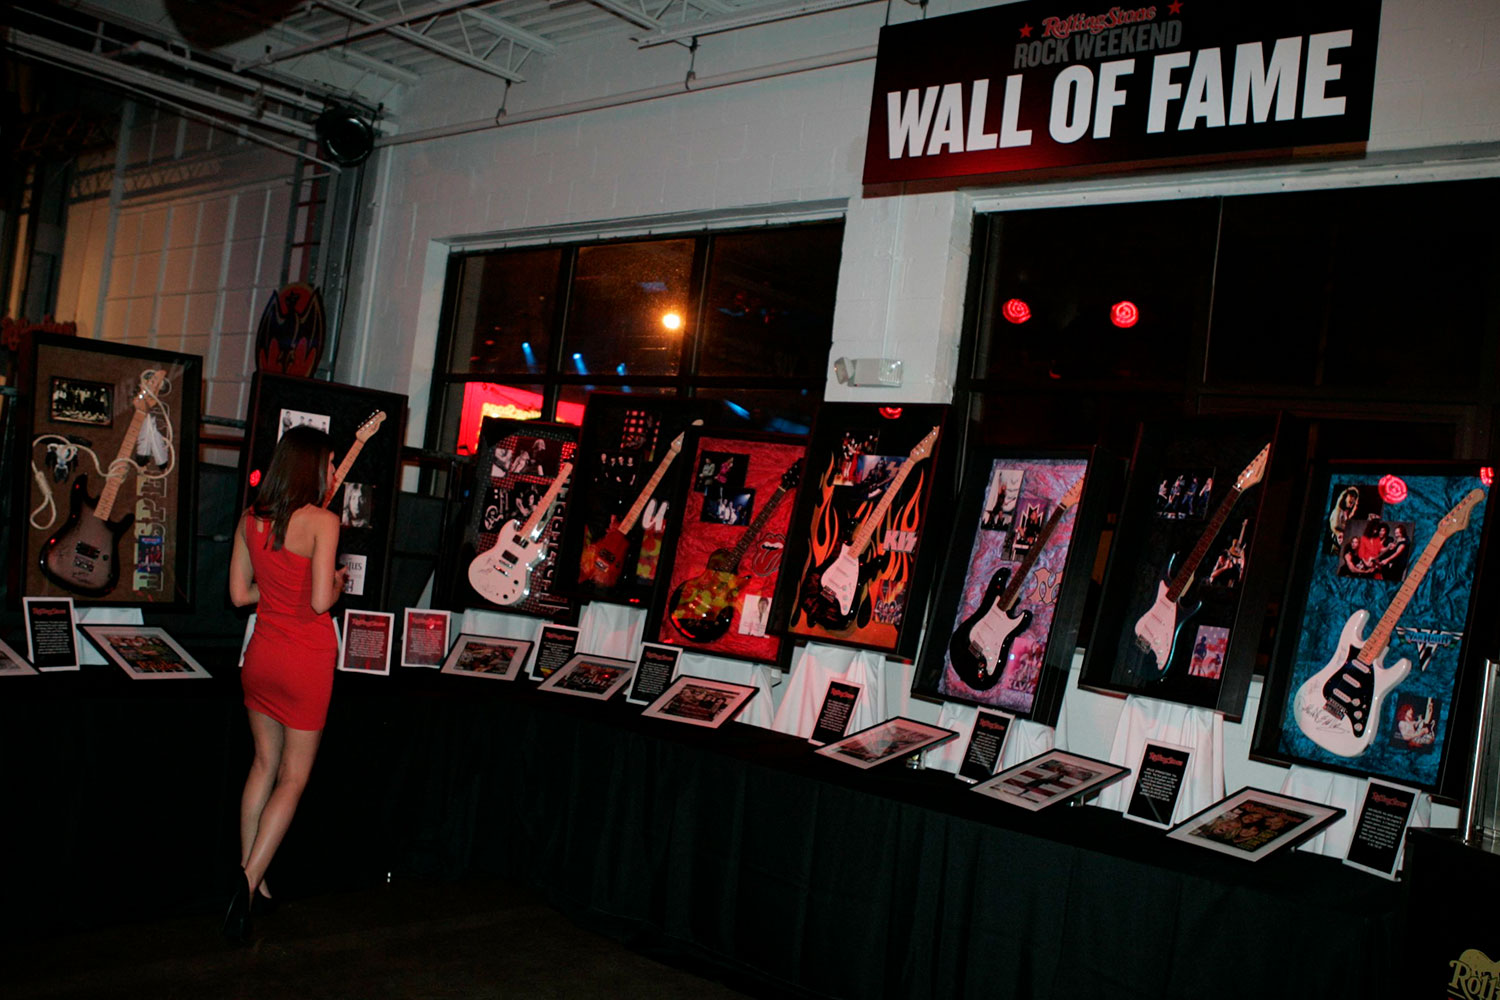 toast-room-decor-wall-of-fame-10twelve.jpg